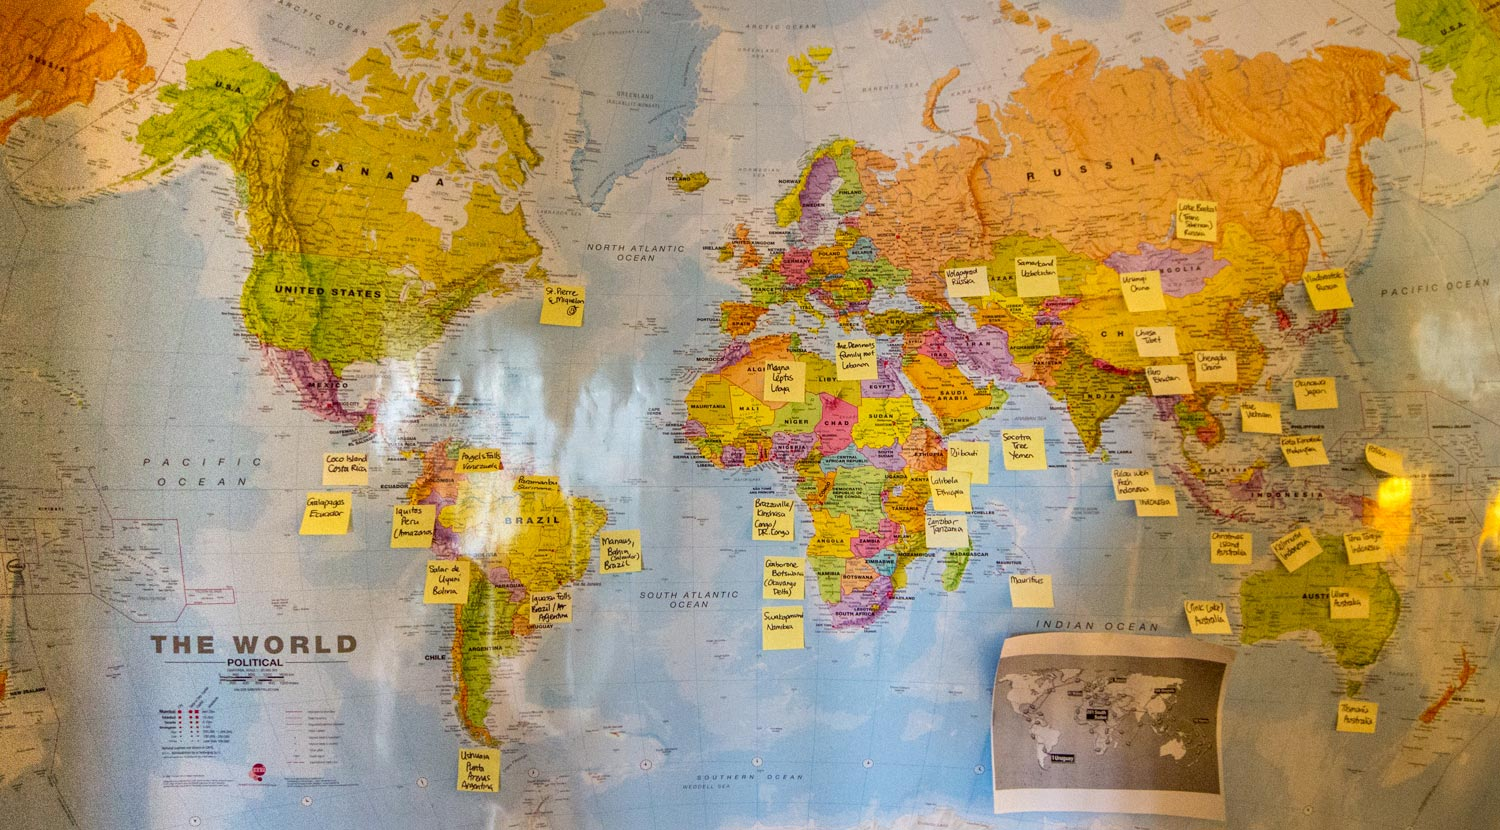 Counting Countries on our travel map